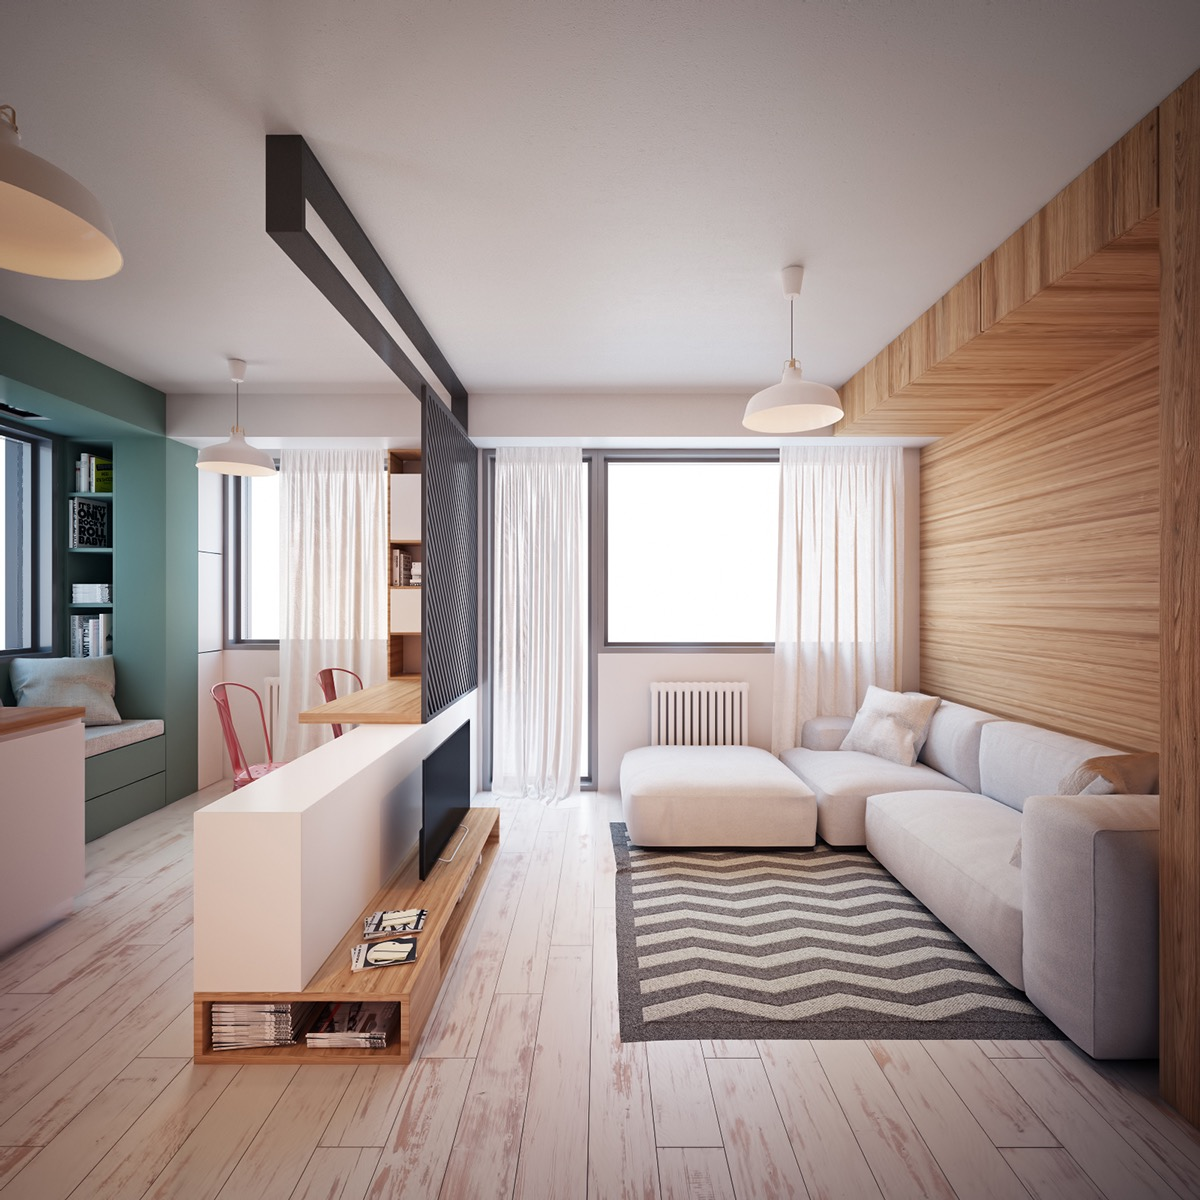 Ultra tiny home design 4 interiors under 40 square meters for 40m apartment design